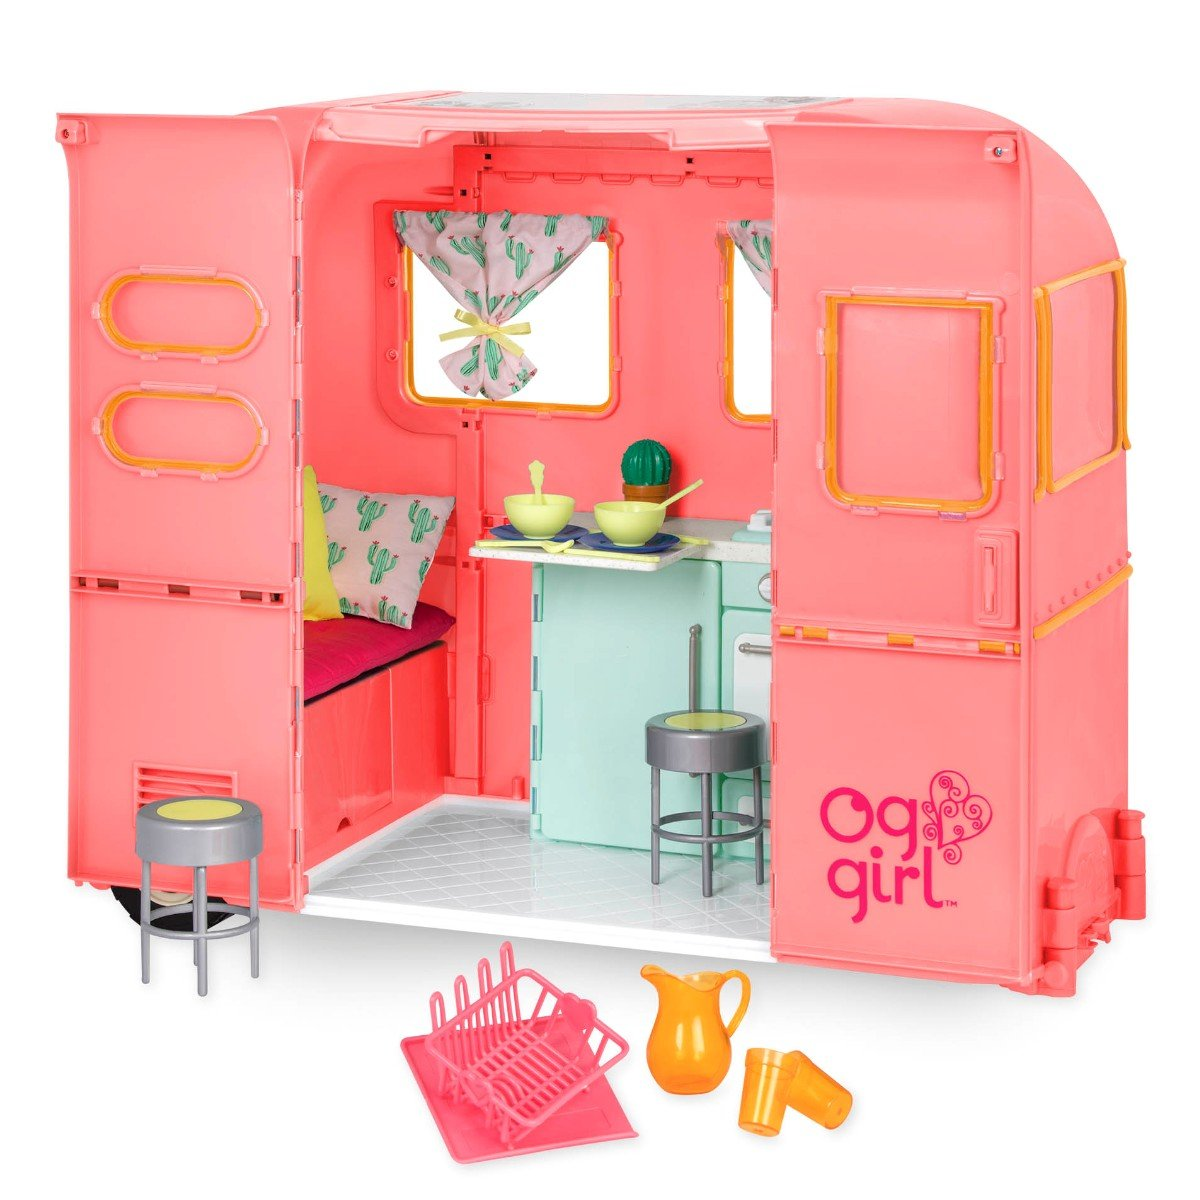 Our Generation - RV Seeing You Camper – Pink (737445)